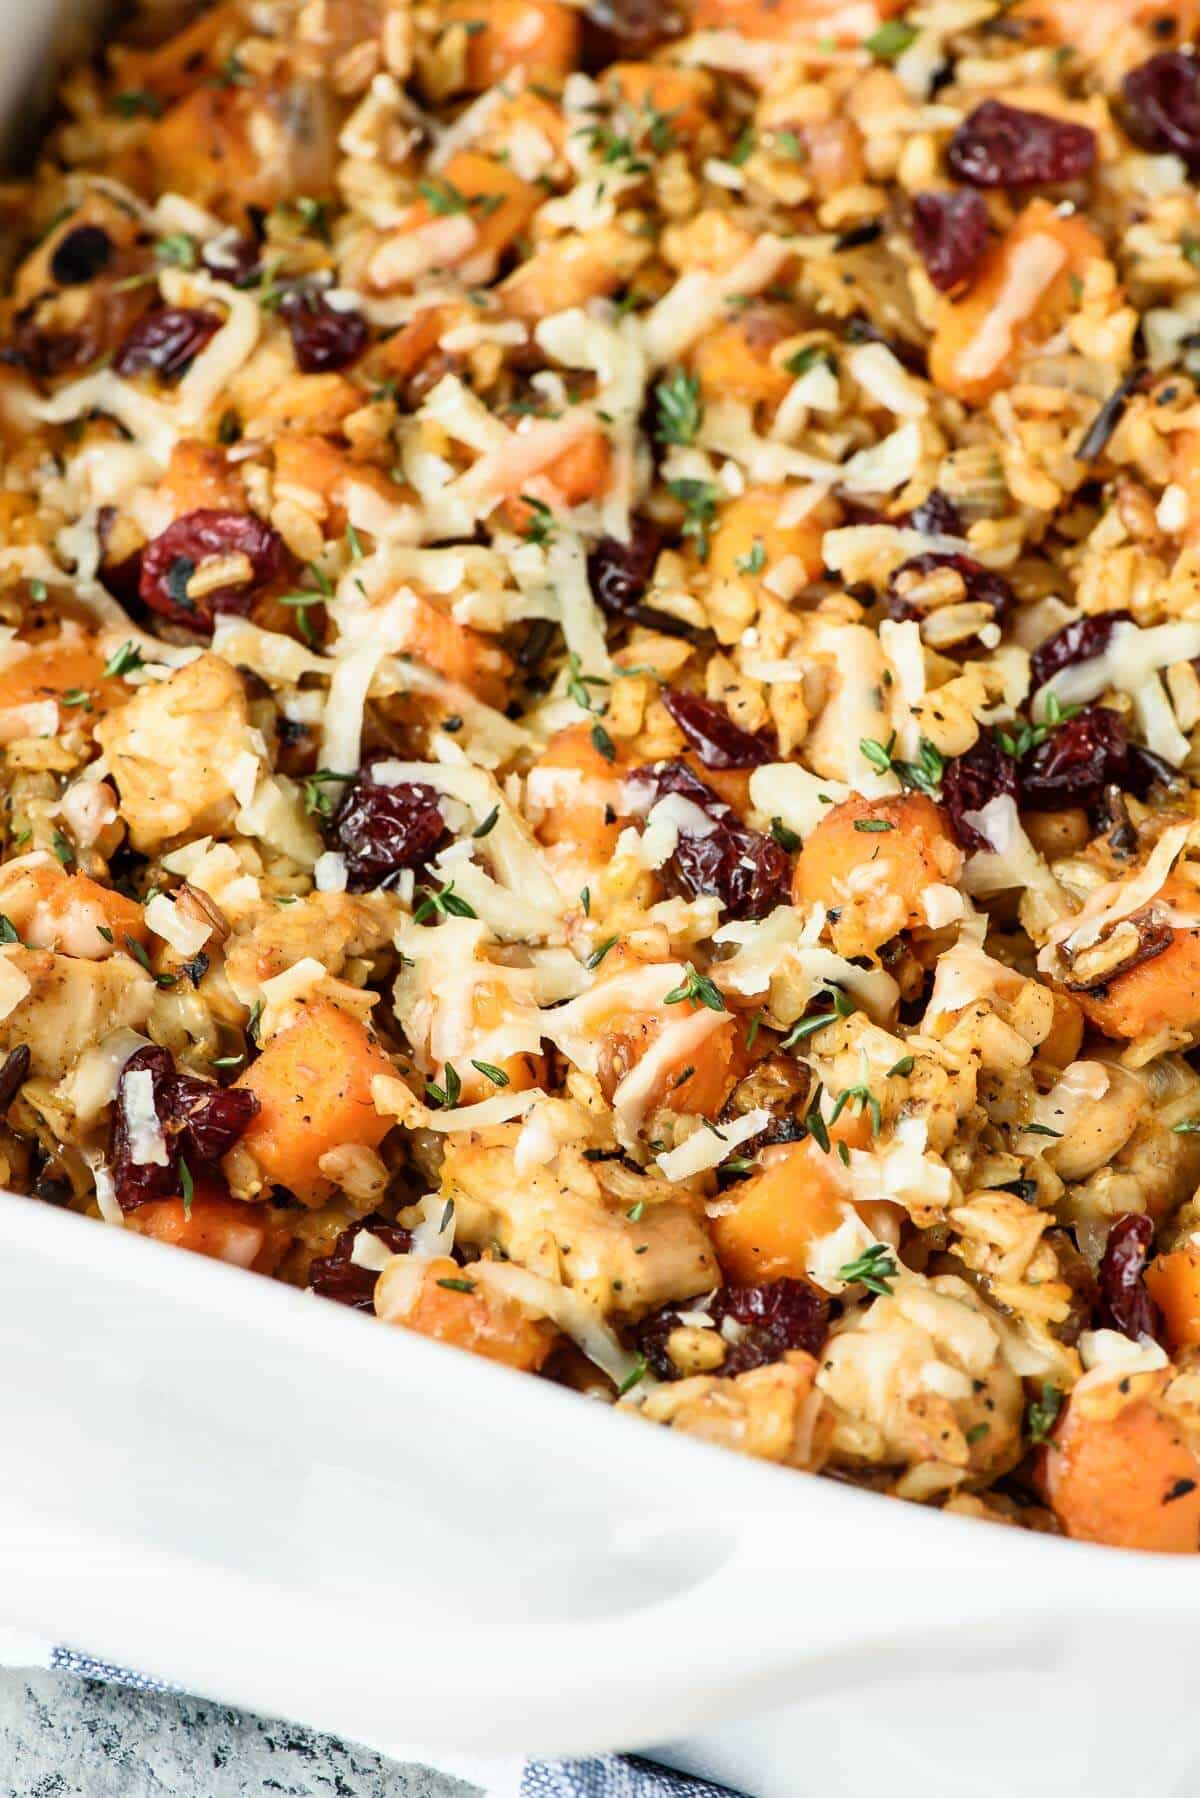 Perfect fall and winter meal: Cheesy Chicken and Wild Rice Casserole with Butternut Squash. Easy and gluten free